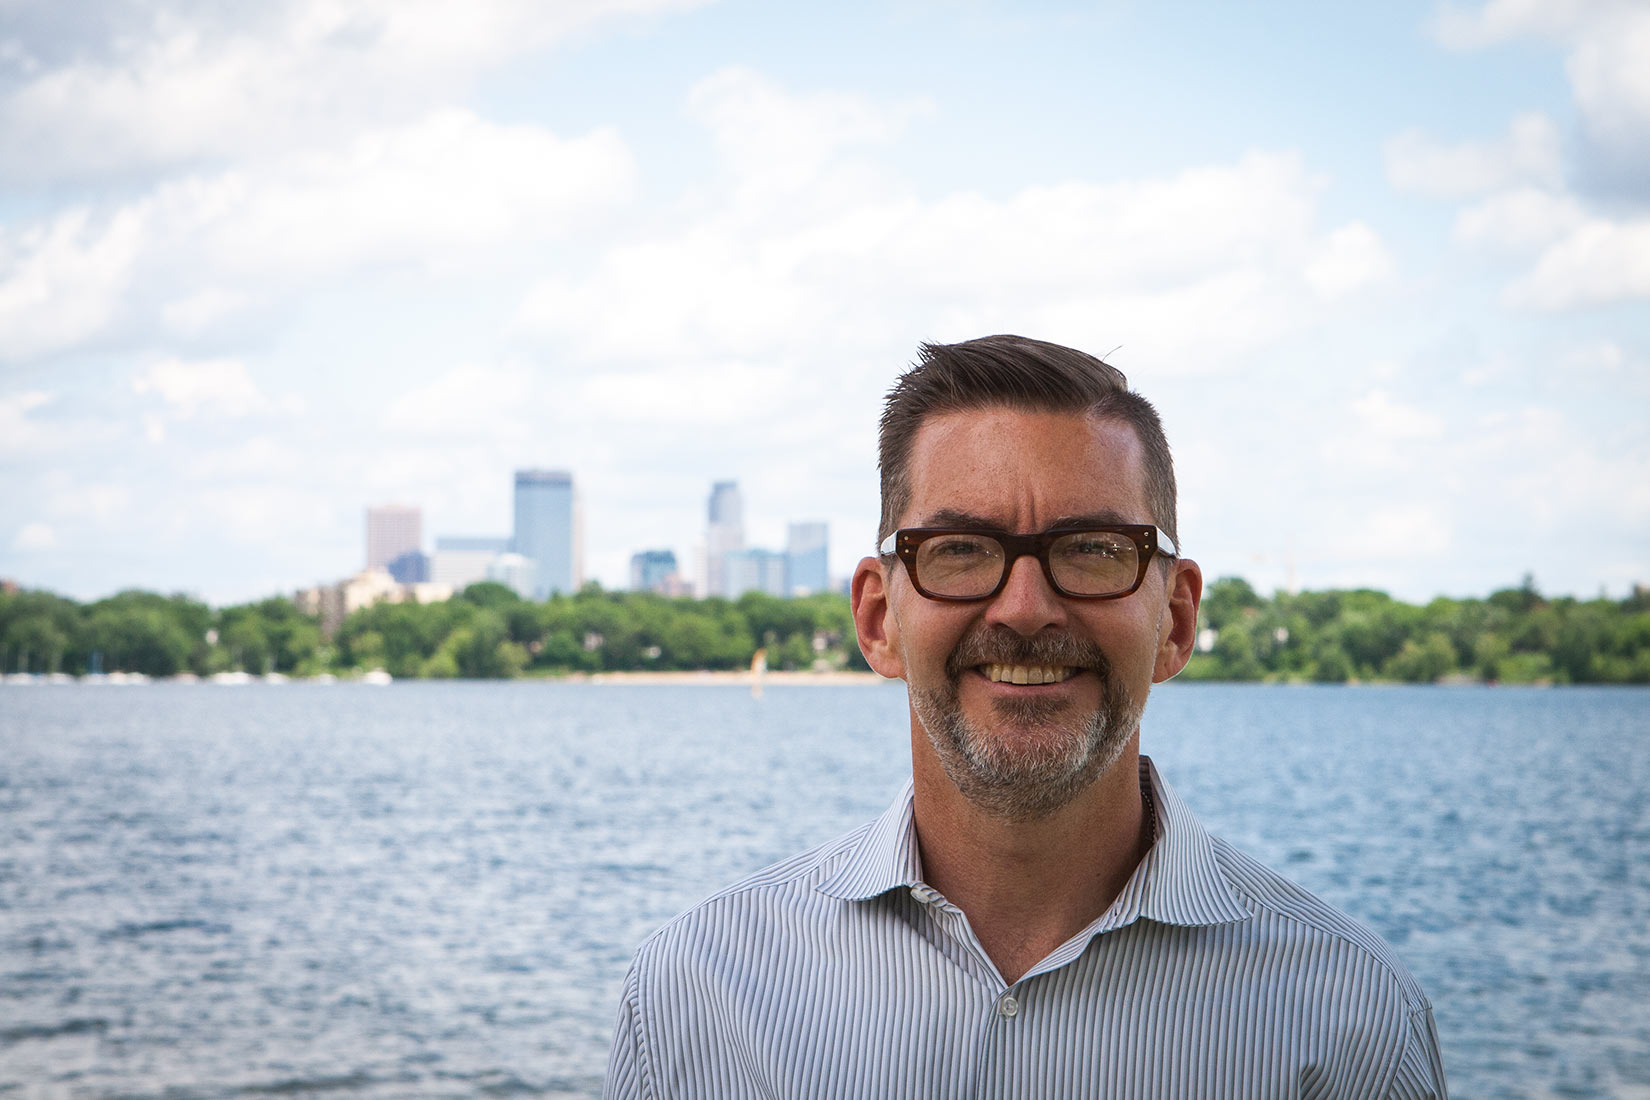 Closeup photograph of Scott Dibble in summertime with Minneapolis skyline in the background